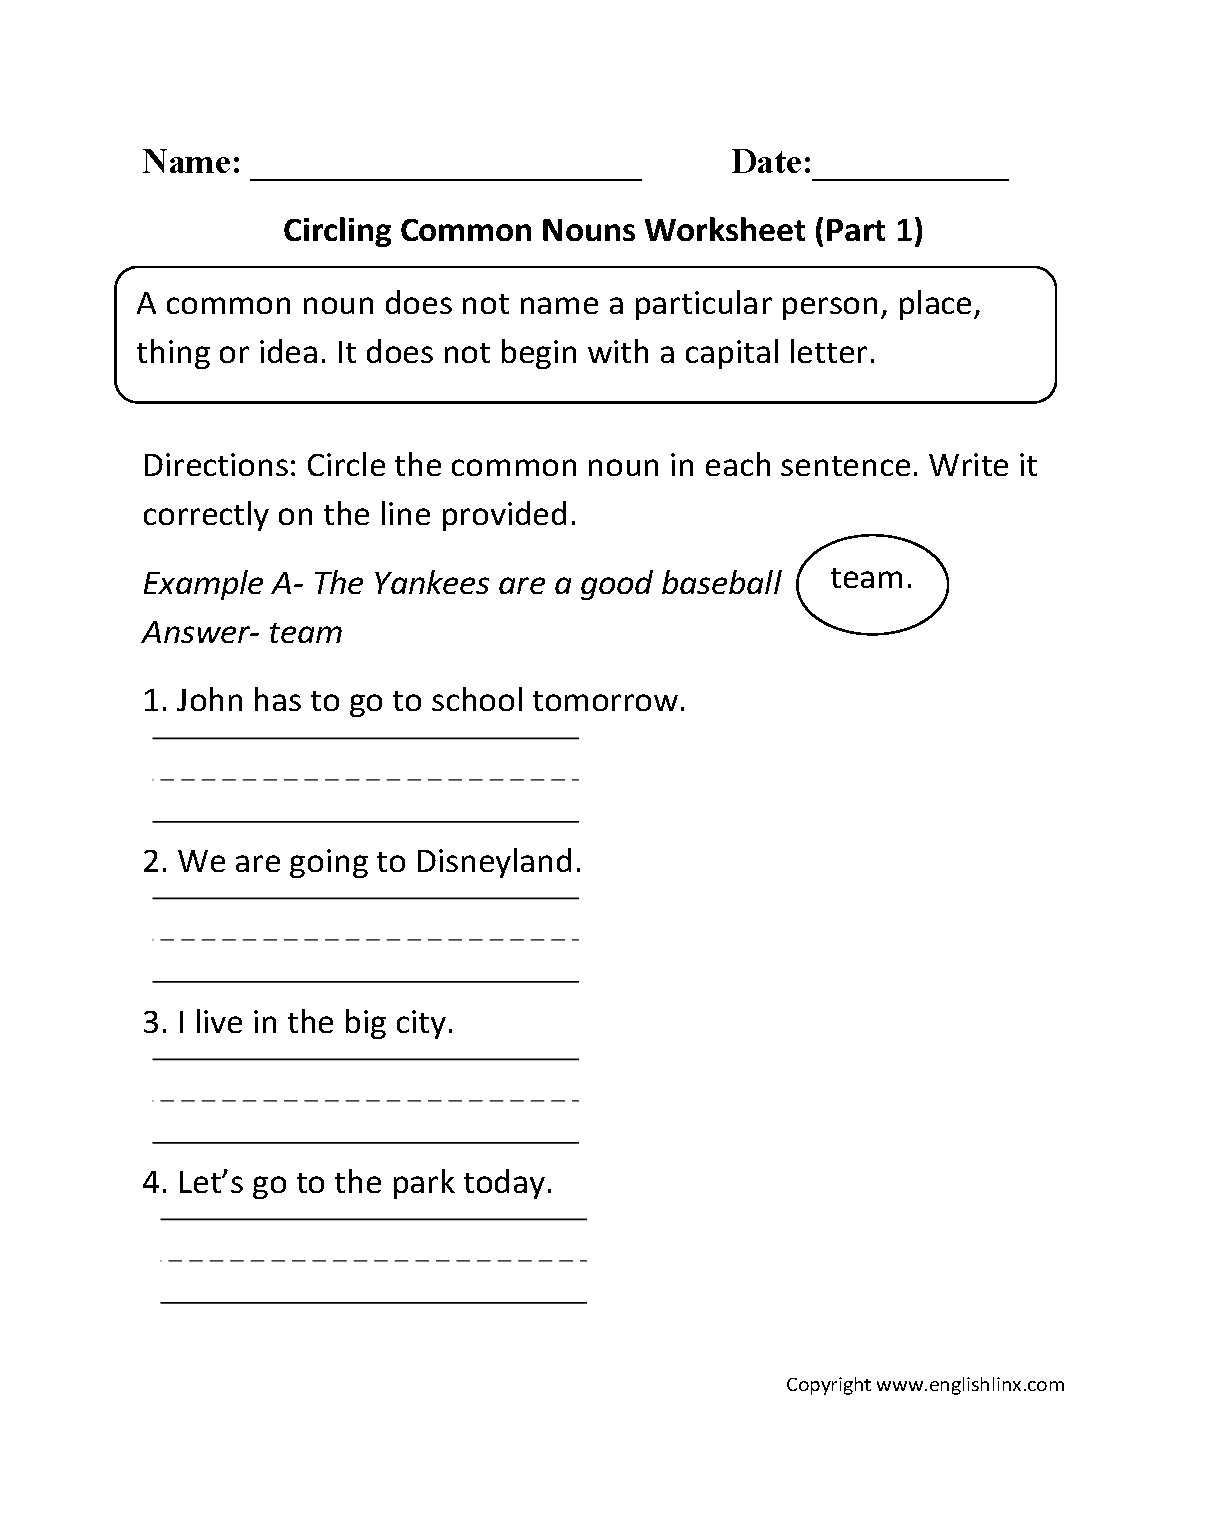 Circling Common Nouns Worksheet Part 1